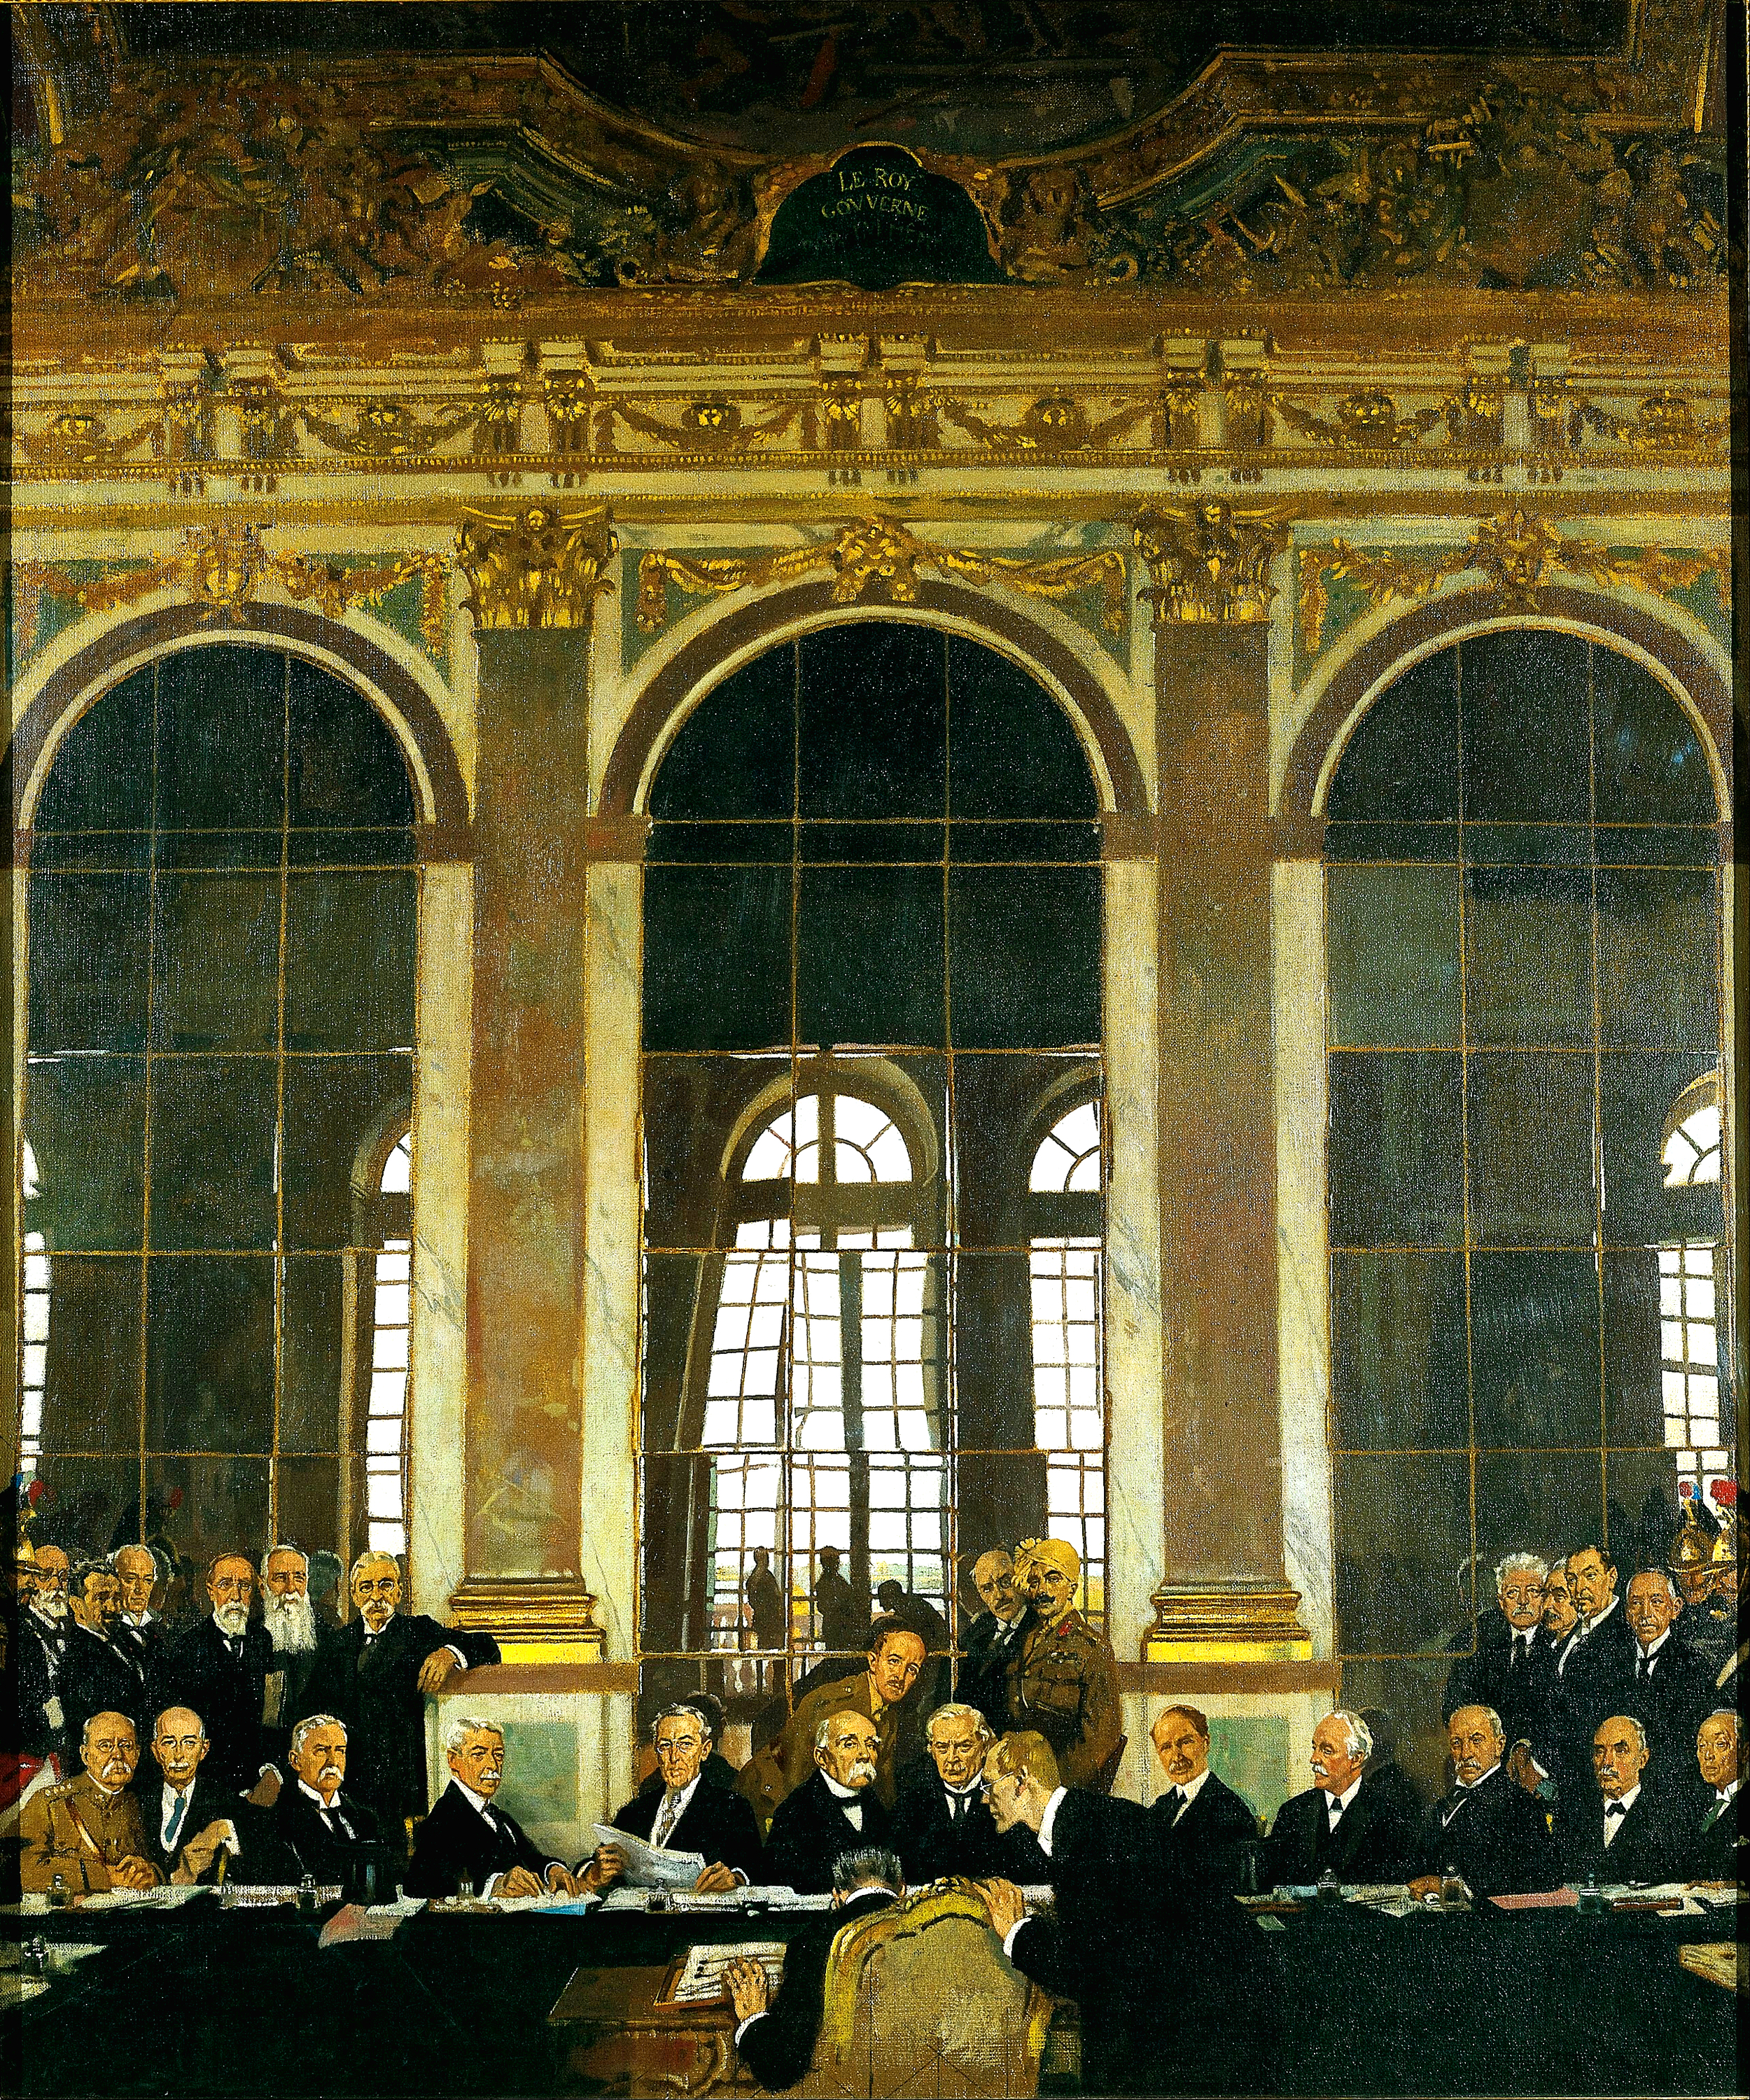 William Orpen,  The Signing of Peace in the Hall of Mirrors, Versailles , 28th June 1919, Imperial War Museum, London.